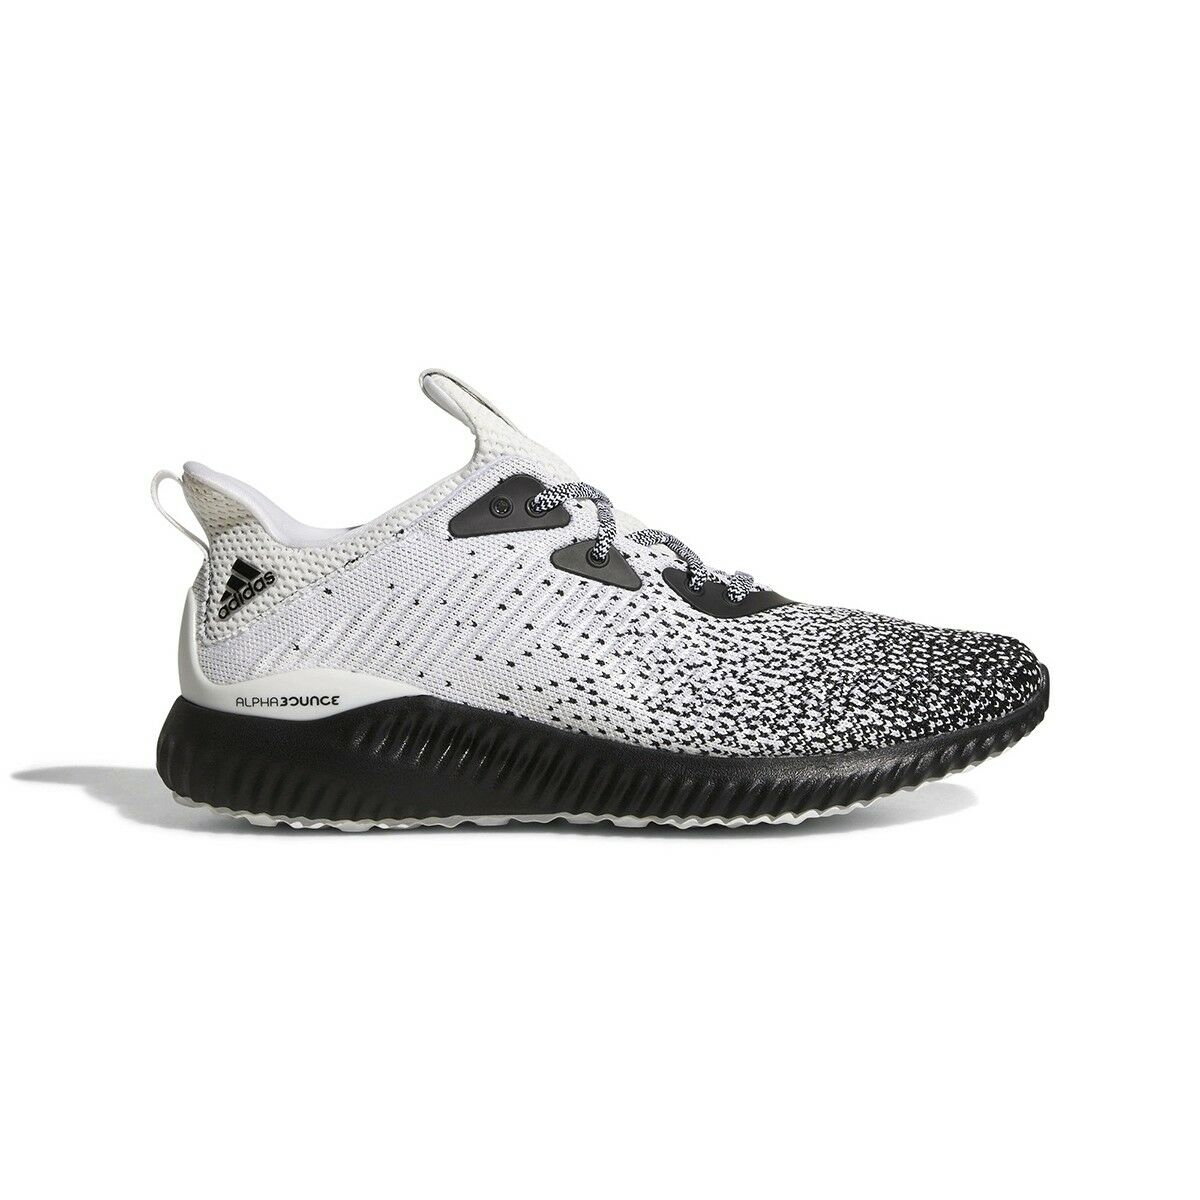 New Adidas Alphabounce CK CQ0406 Black White Running Sport Shoes Men All Comfortable